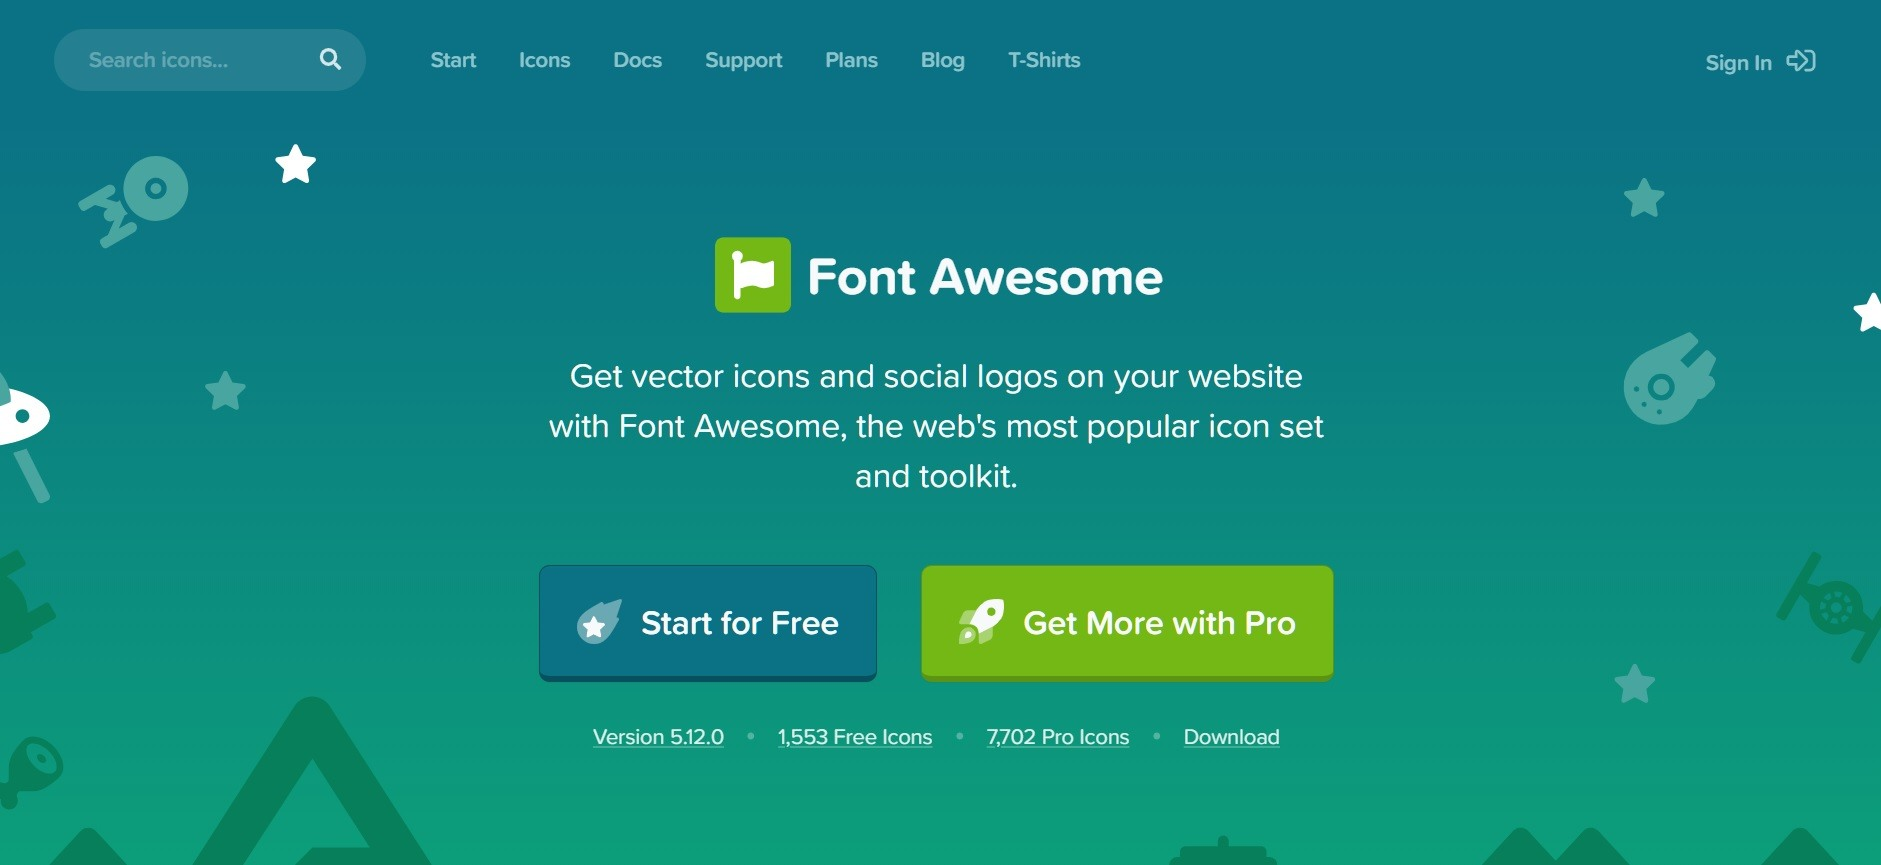 Su dung Font Awesome de tao icons trong Blogspot Blogger